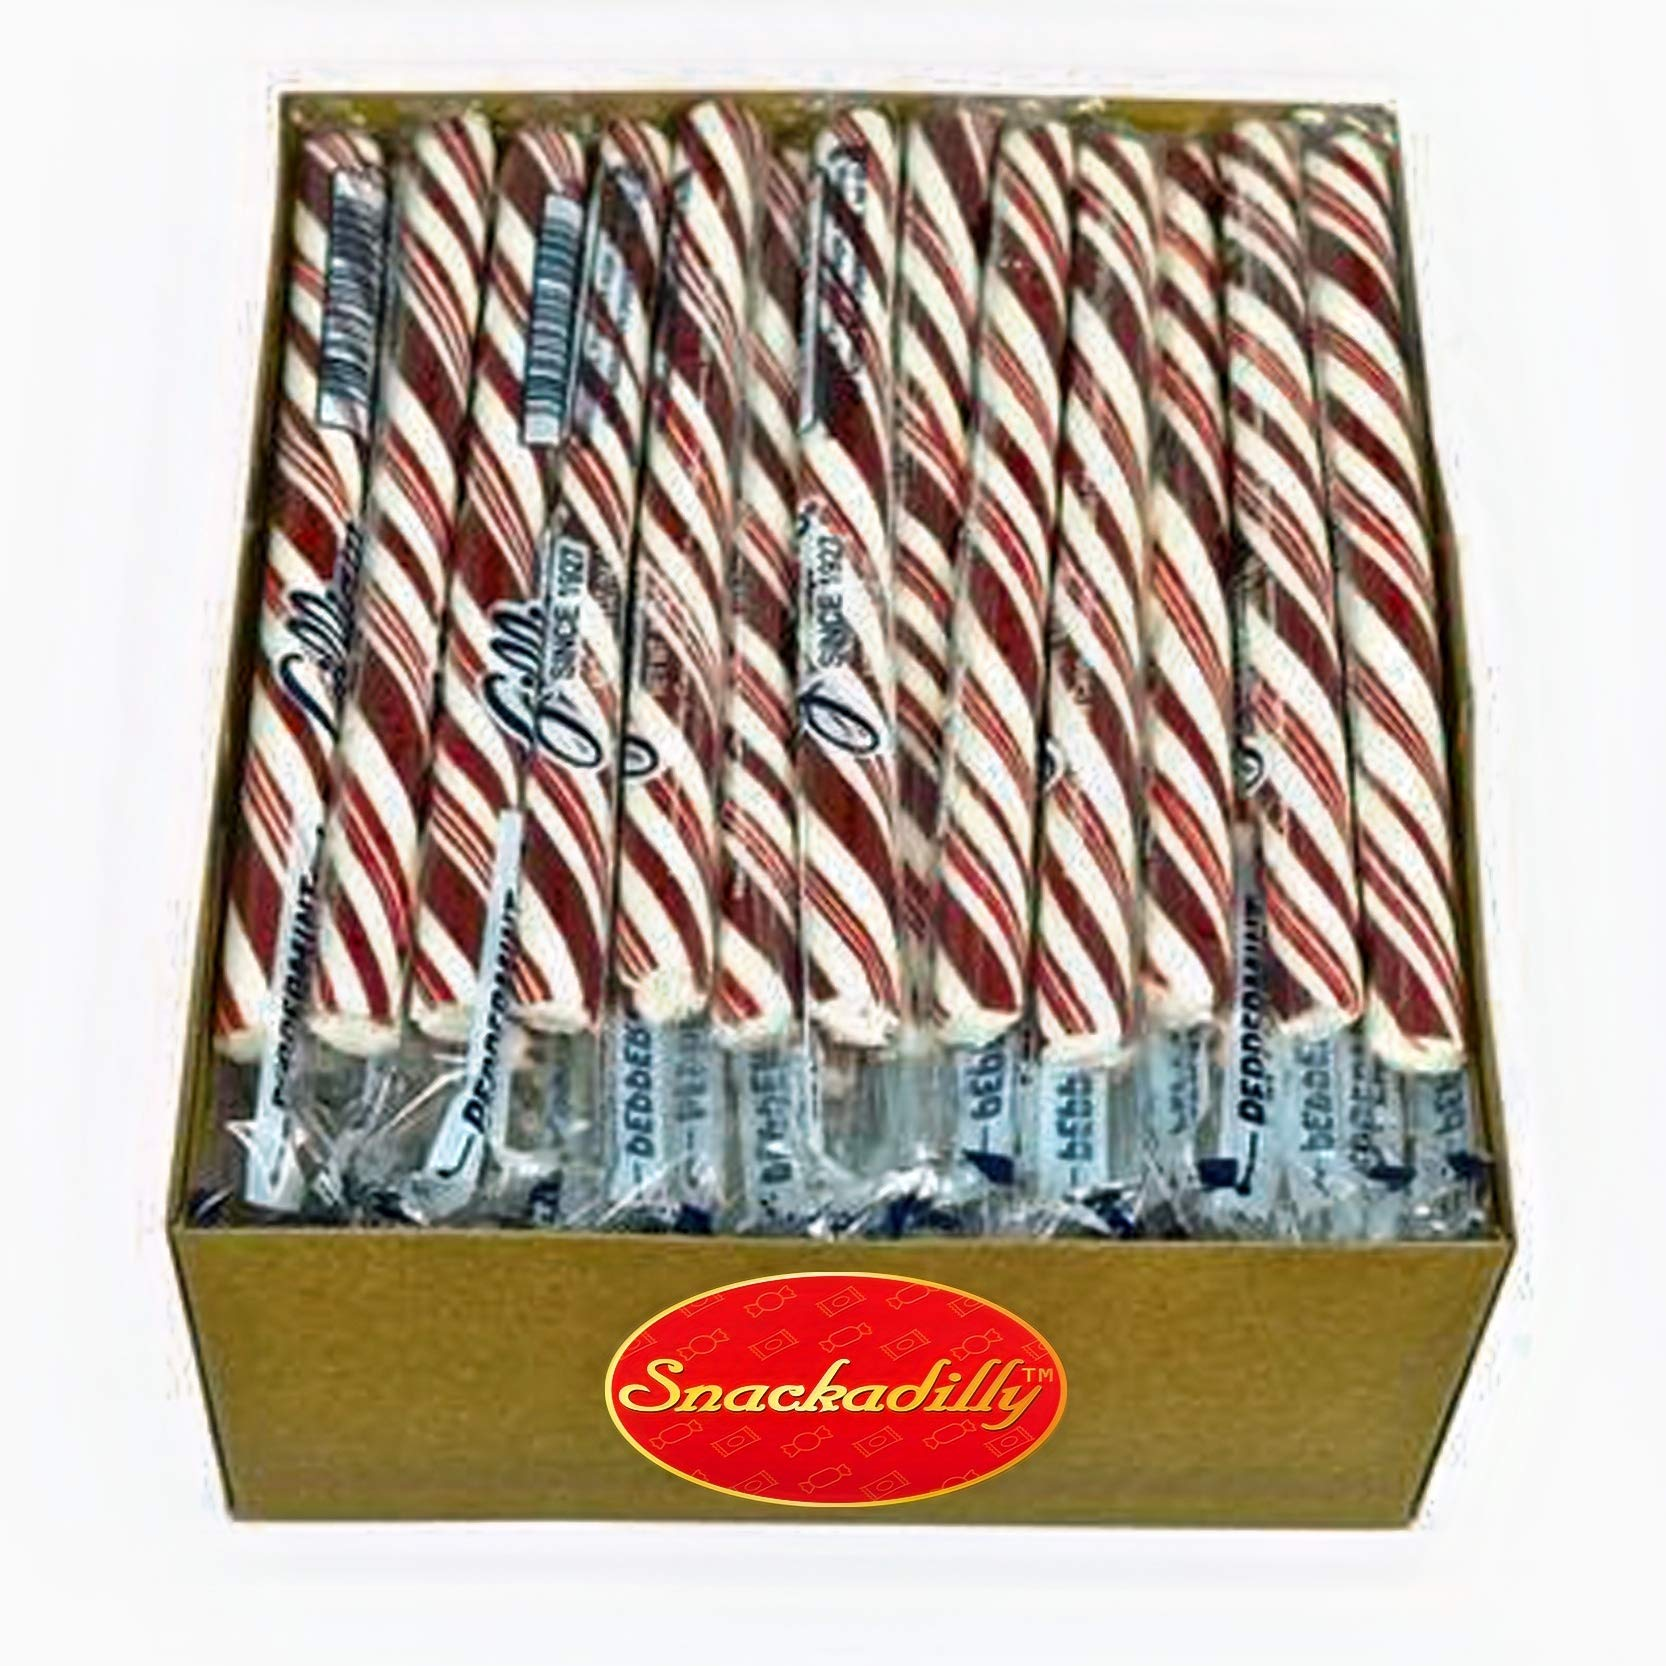 Peppermint Candy Sticks - Box Of 80 Candy Sticks Individually Wrapped - Carefully Packaged By Snackadilly by Snackadilly